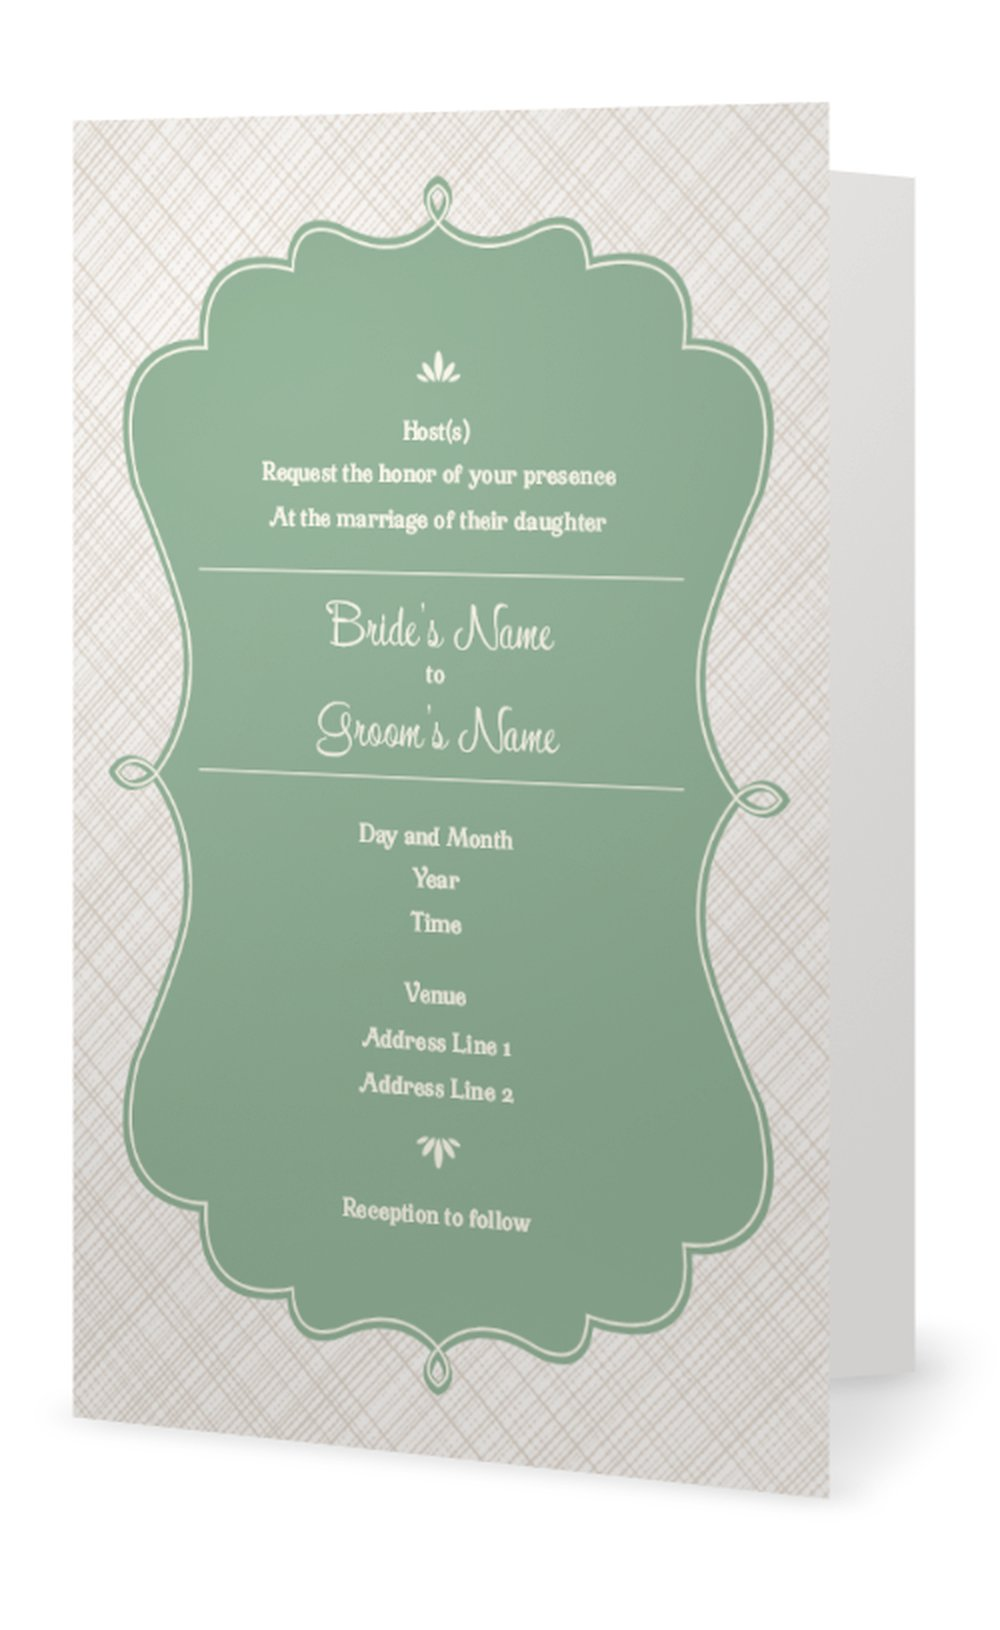 Vista Print Bridal Shower Invitations was very inspiring ideas you may choose for invitation ideas